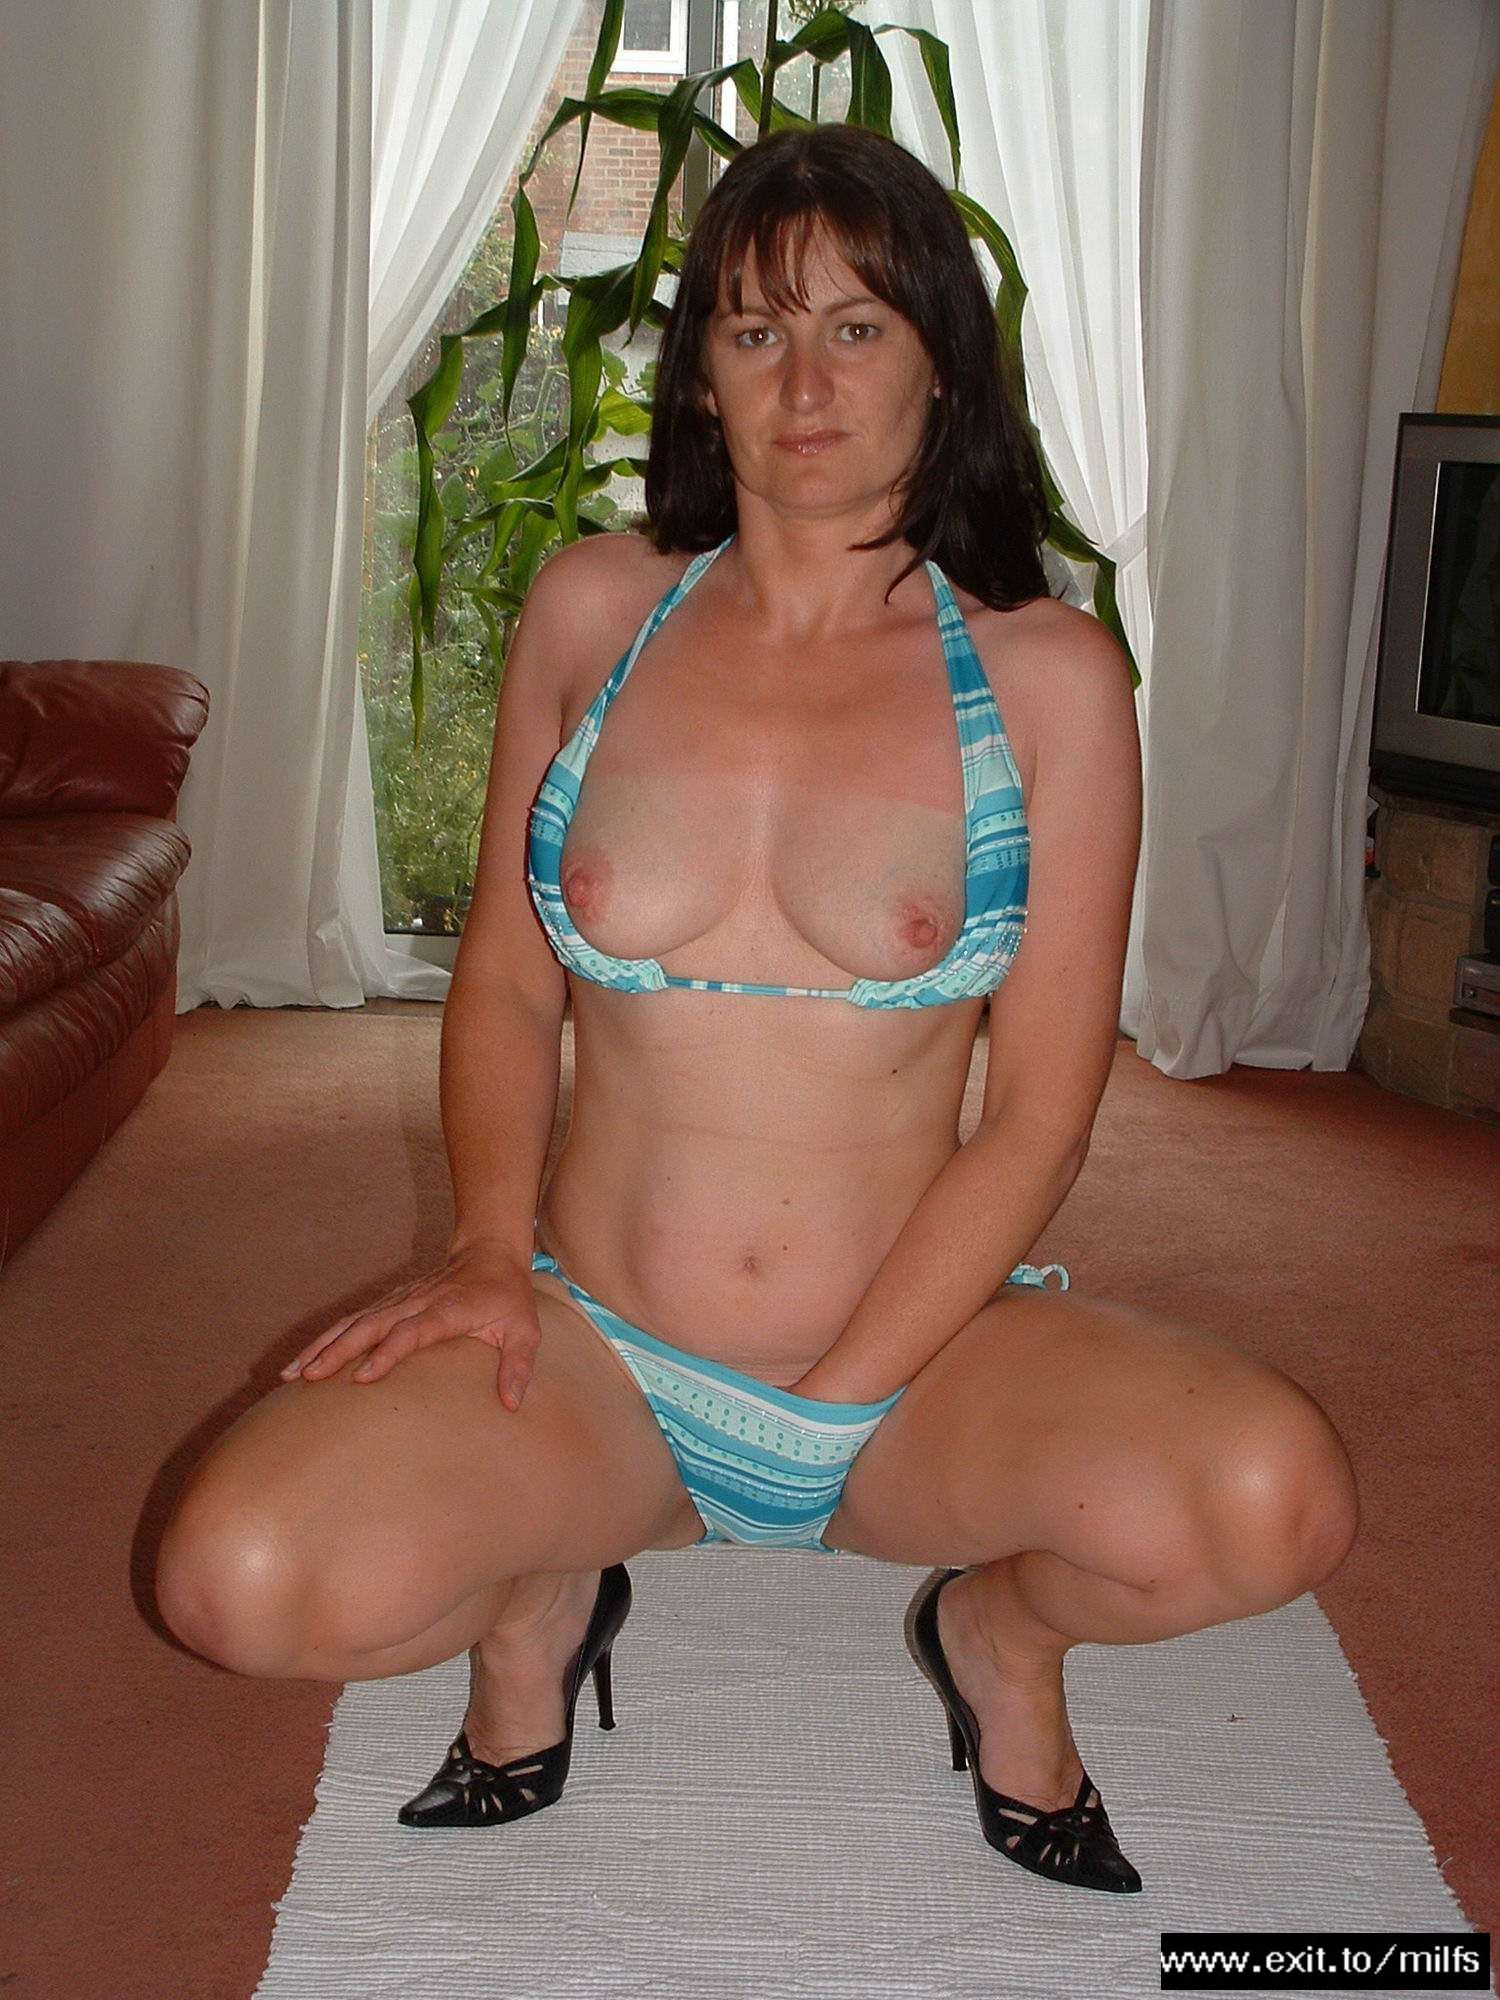 Hot homemade milf movies